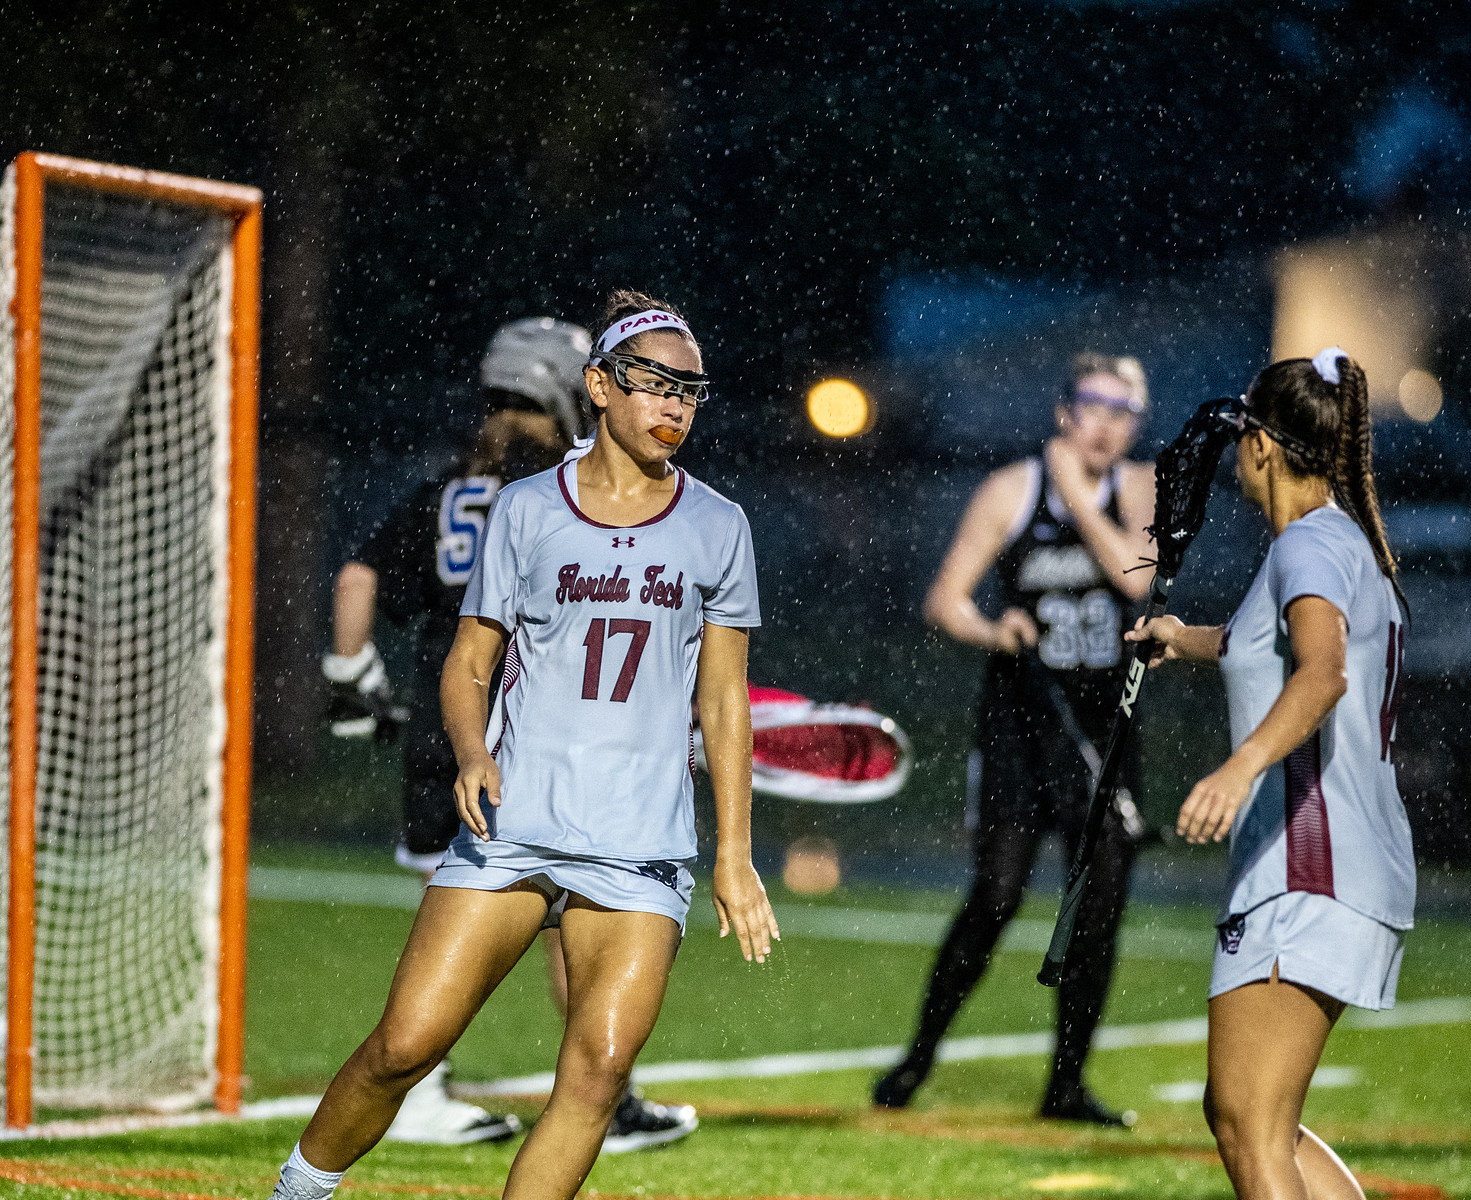 Tech Plays Tampa Tough in Women's Lacrosse